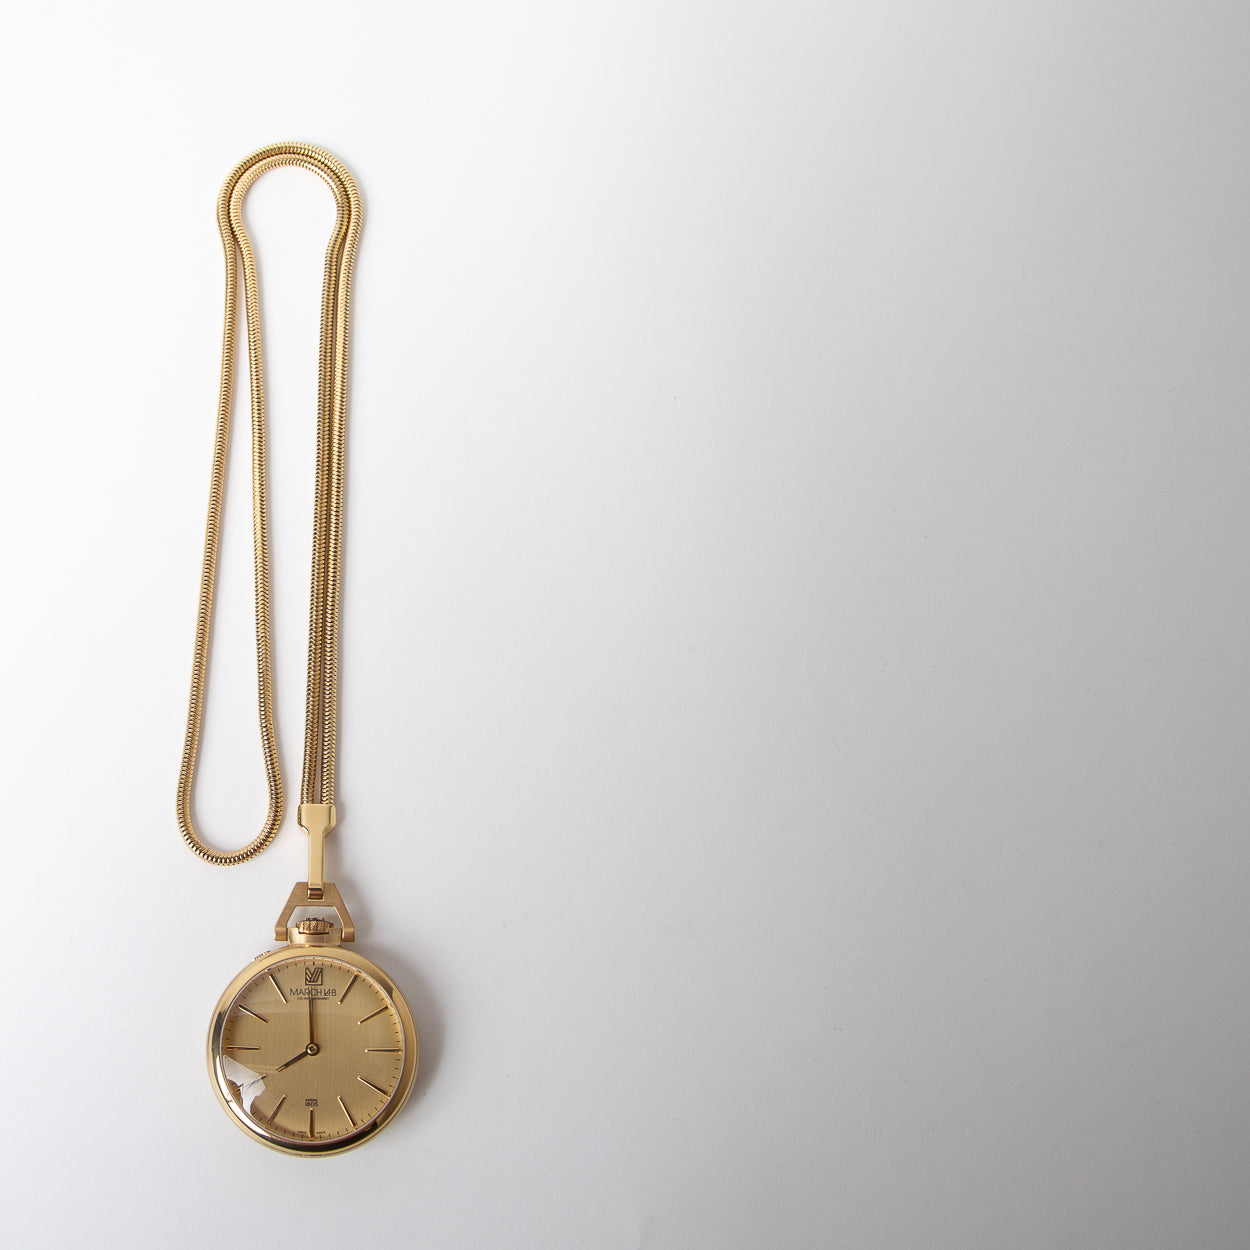 1805 Klimt Necklace Watch